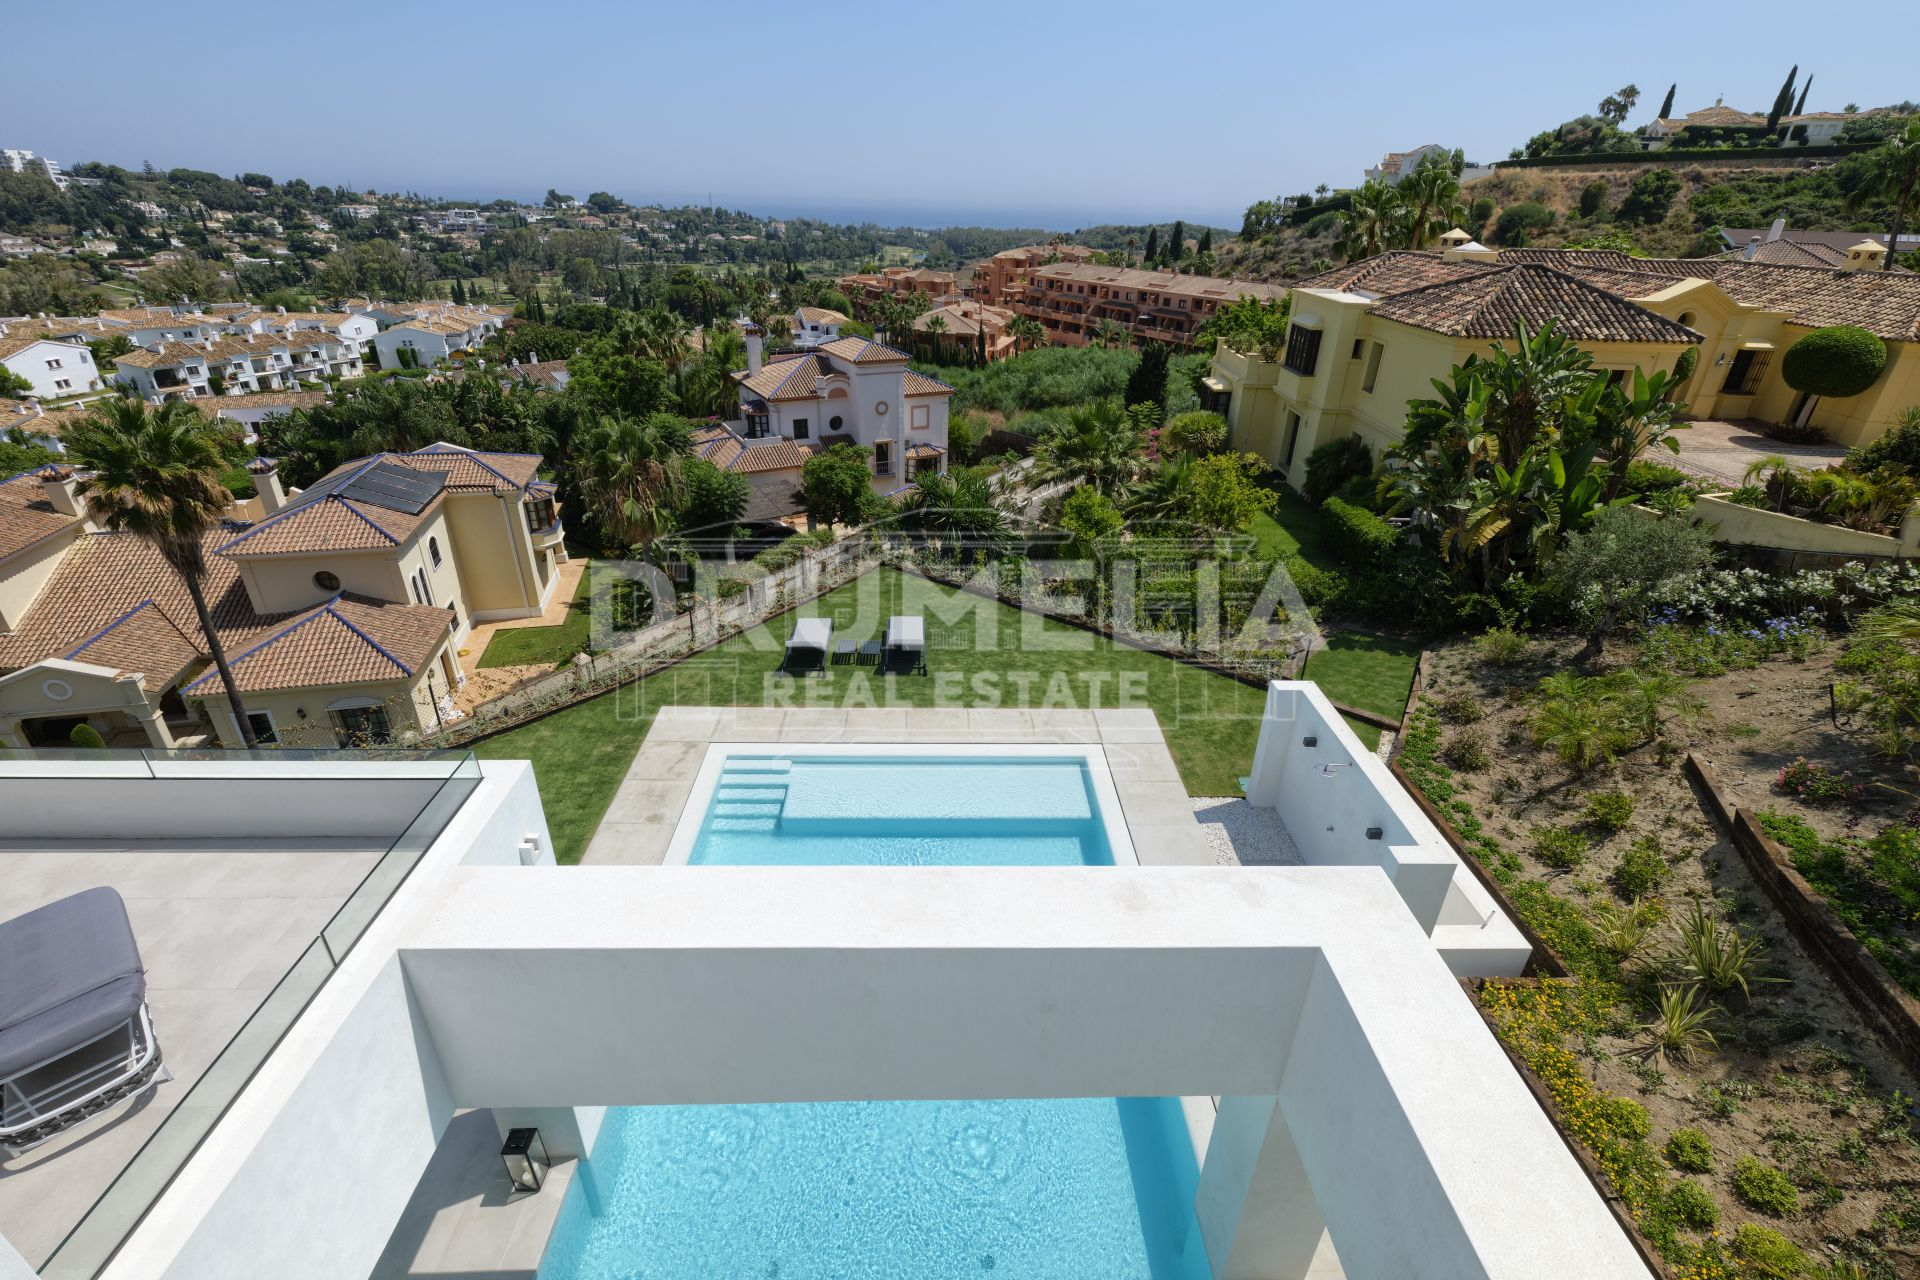 Benahavis, Superb Contemporary High-End Villa, El Paraiso Alto, Benahavis